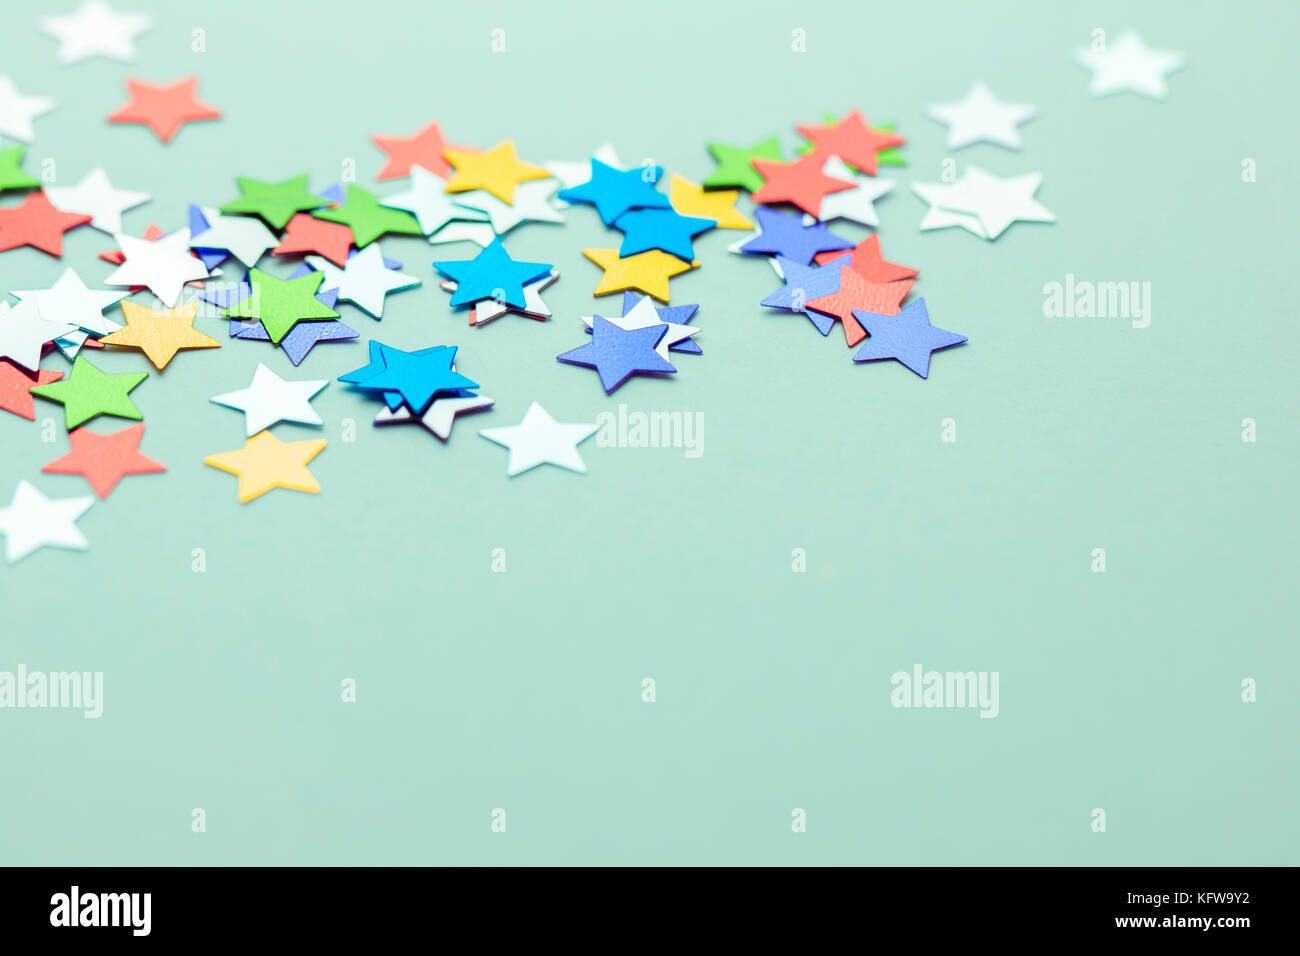 Asterisk symbol stock photos asterisk symbol stock images alamy colorful star confetti on neutral background with space for text stock image biocorpaavc Image collections